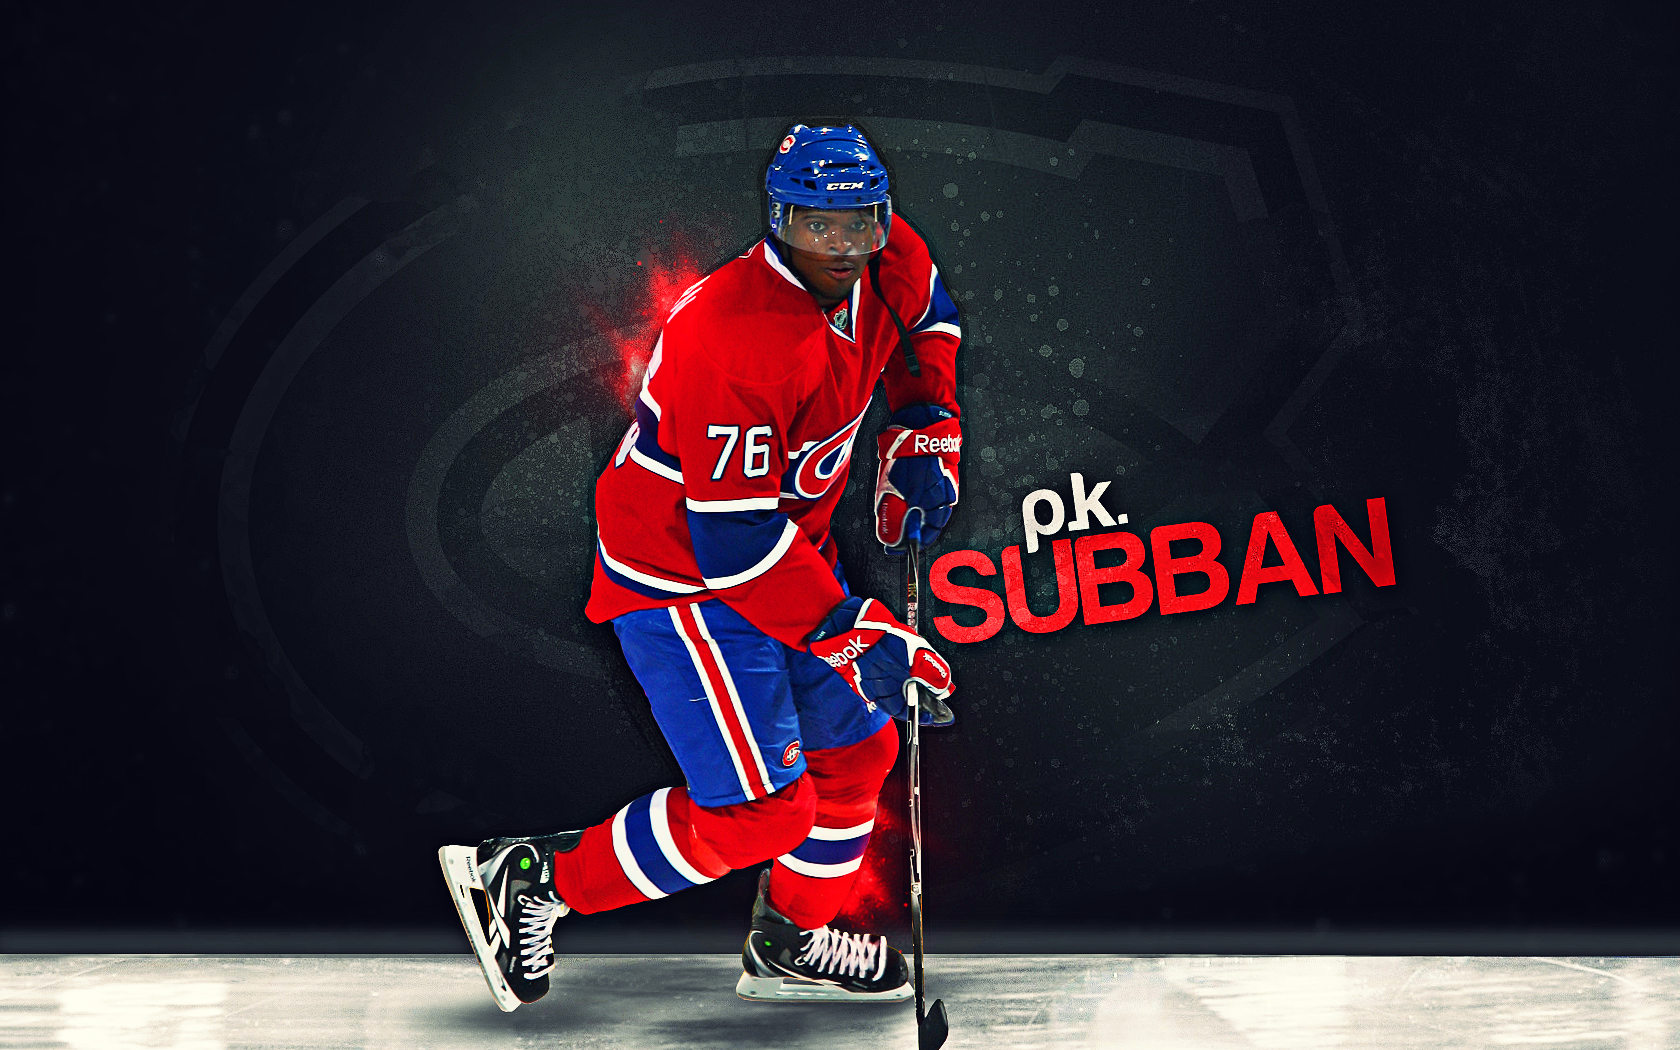 best sneakers 76257 e0634 Montreal Canadiens - P. K. Subban - Montreal Canadiens Обои ...